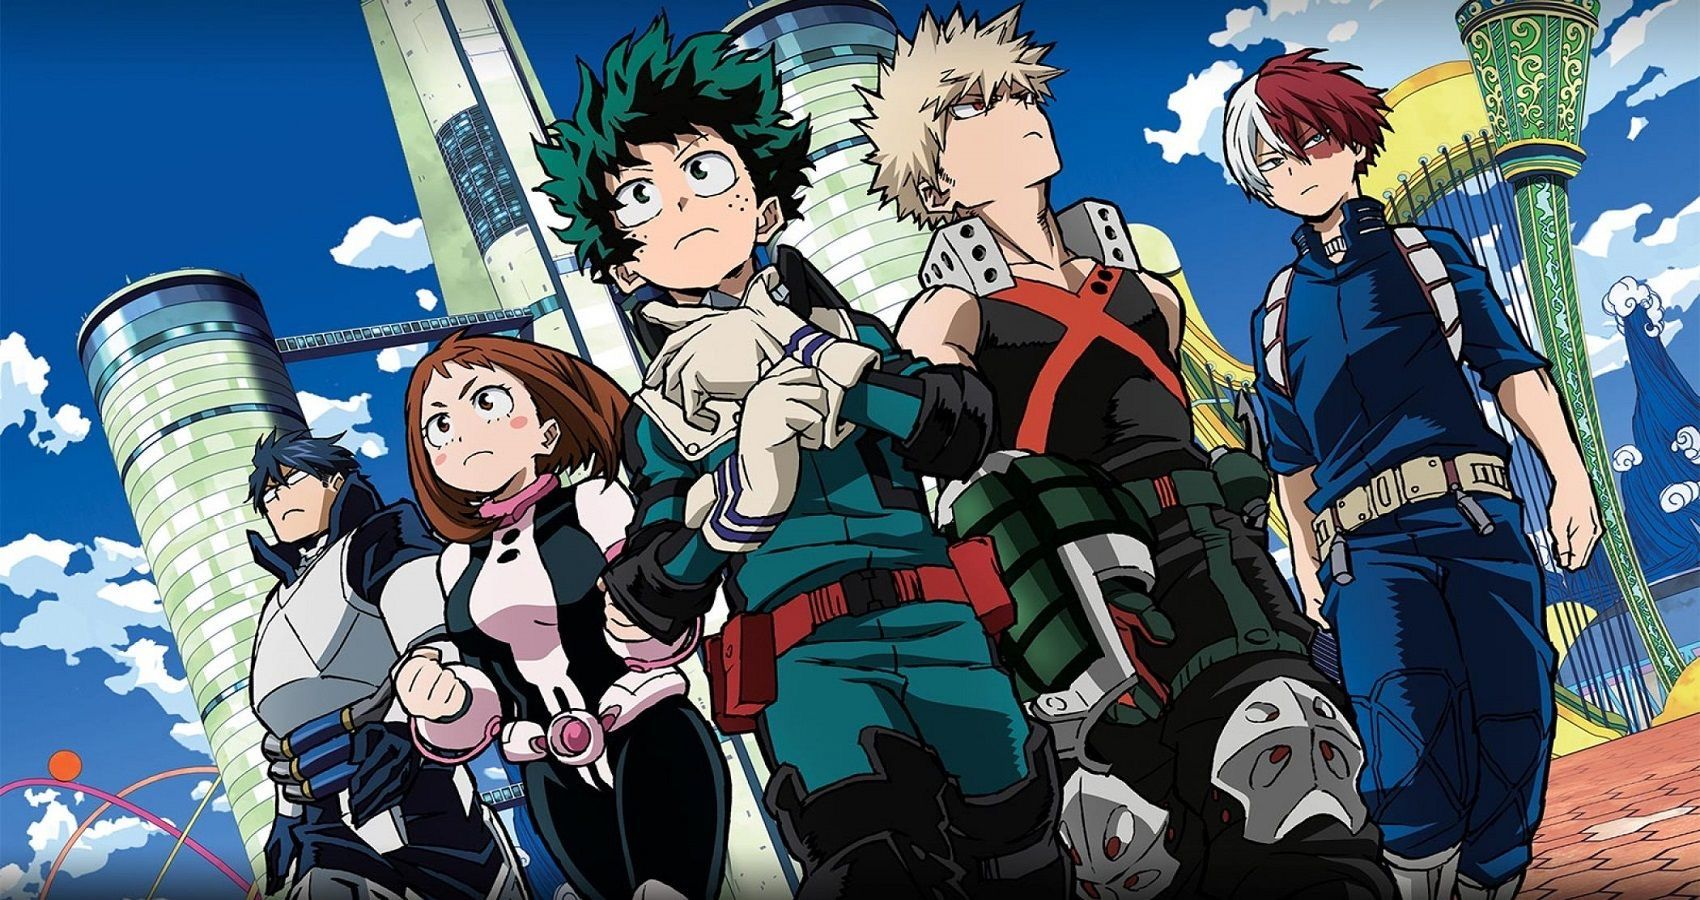 Pin by ★¡ 𝚔𝚘𝚣𝚎𝚗𝚗𝚒𝚒 on ★ ANIME┊アニメ in 2020 Hero movie, My